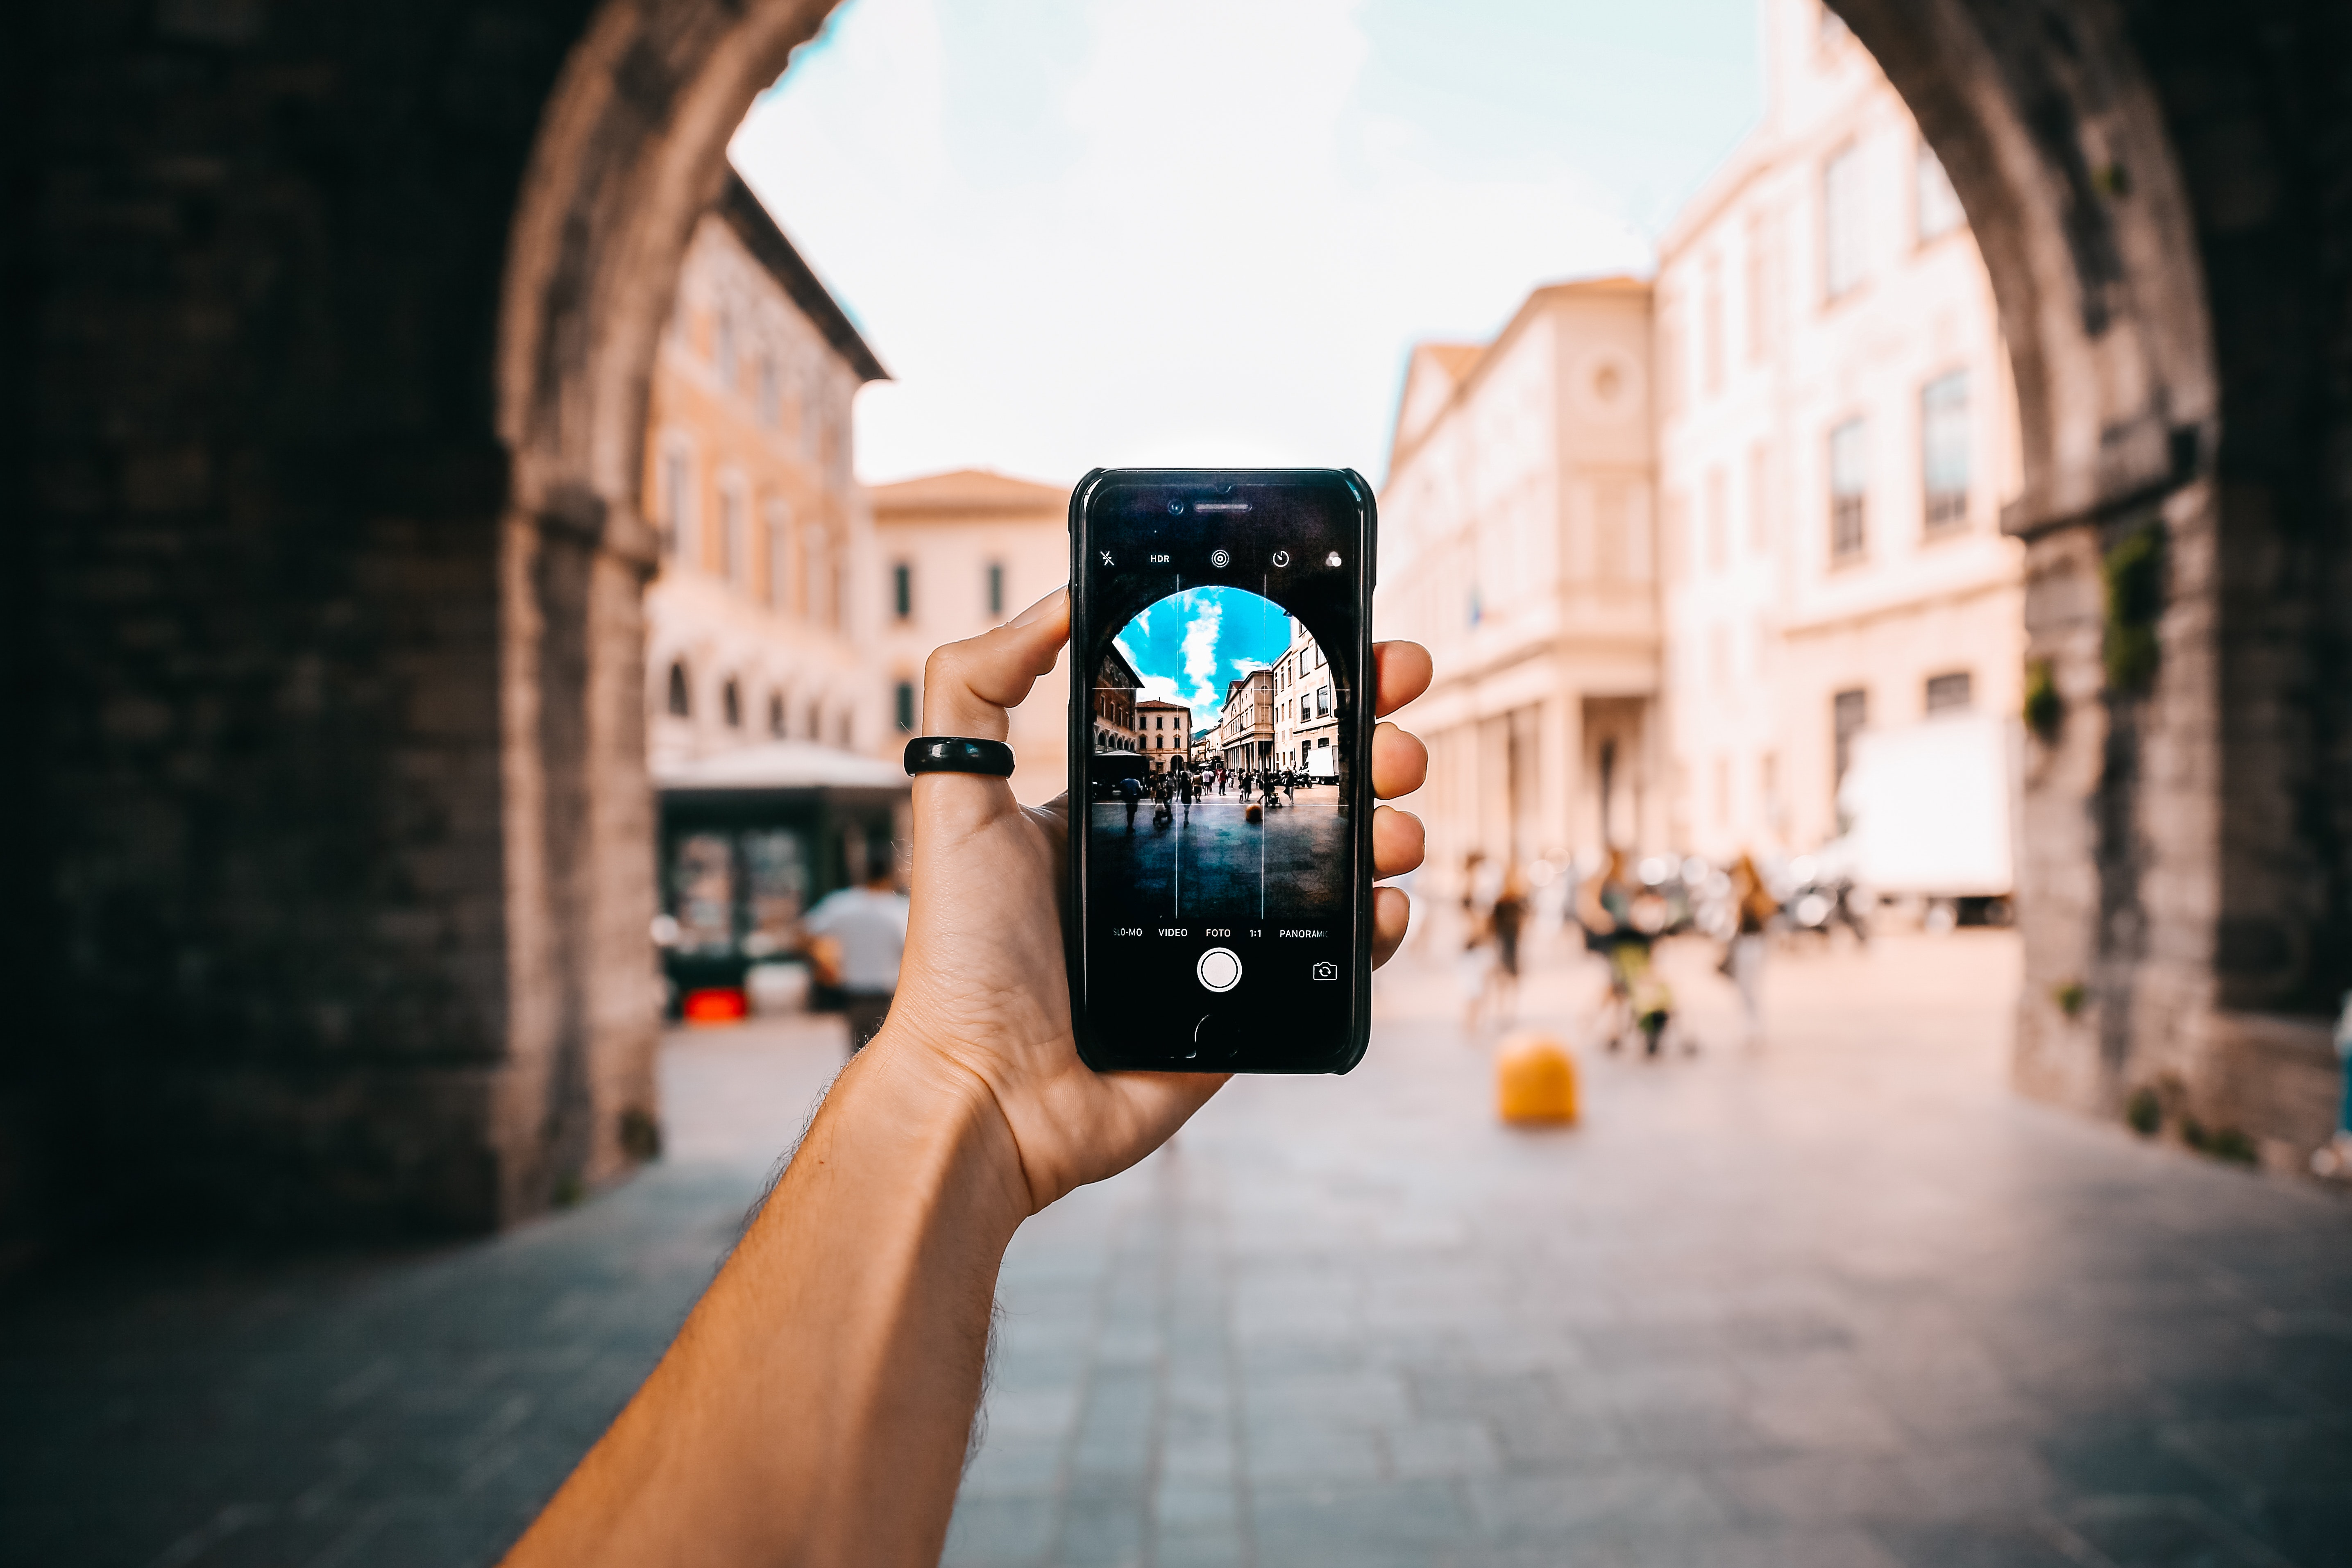 Taking a picture of Italy with a smartphone for social media marketing